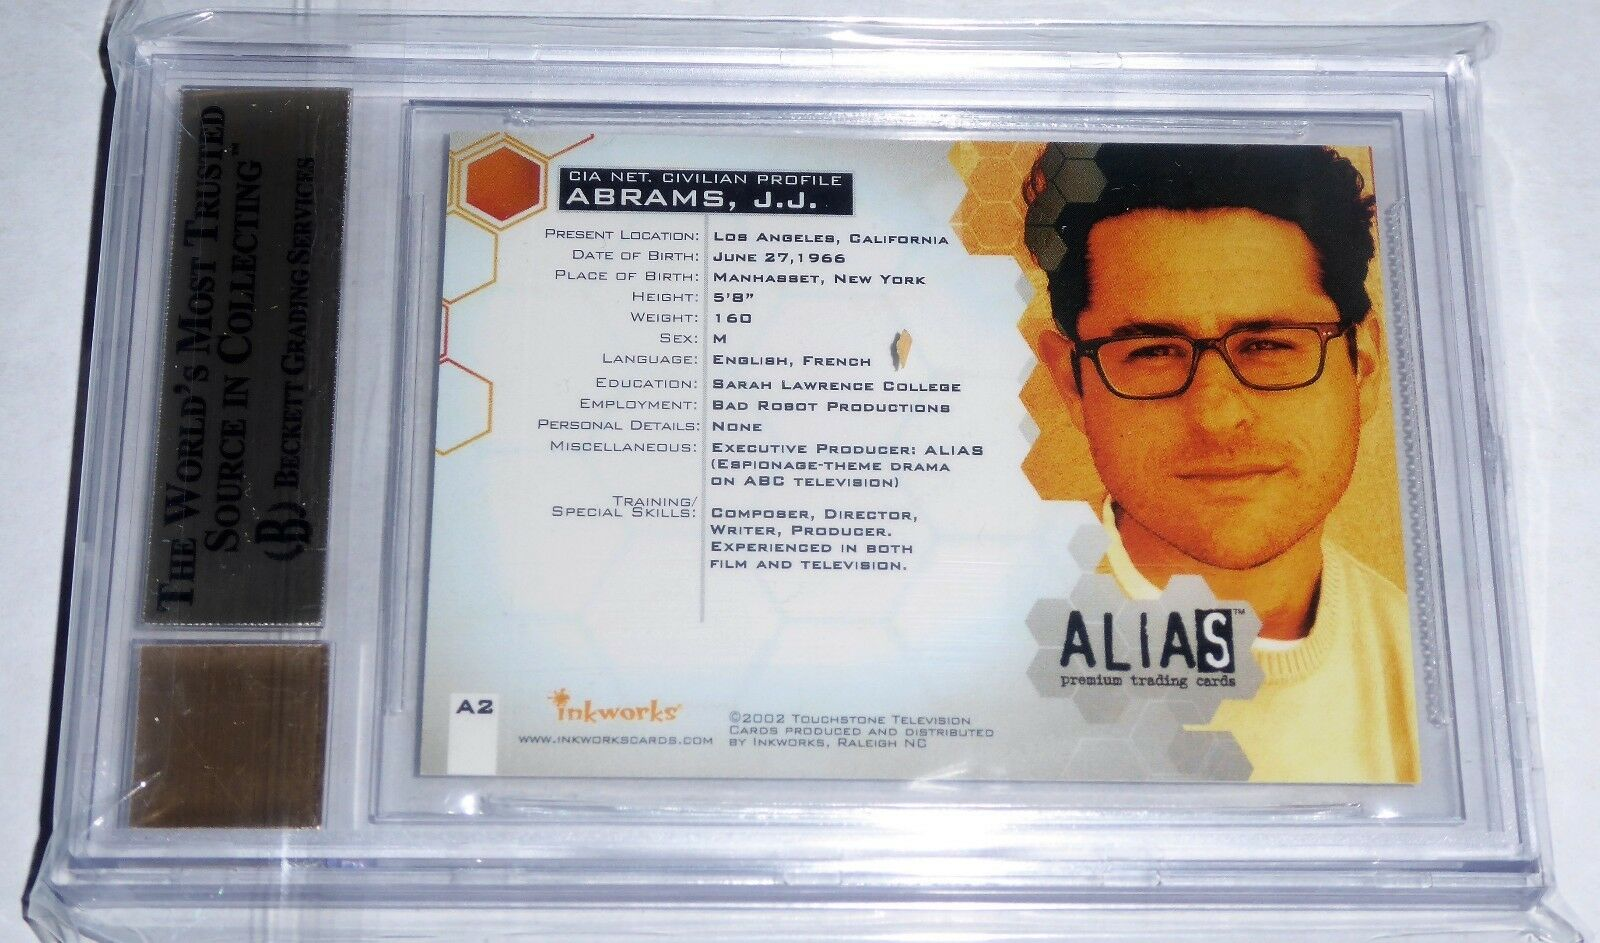 J.J. ABRAMS 2002 Alias Season 1 Autographs Signature BGS 9.5 GEM MINT Card Auto 3